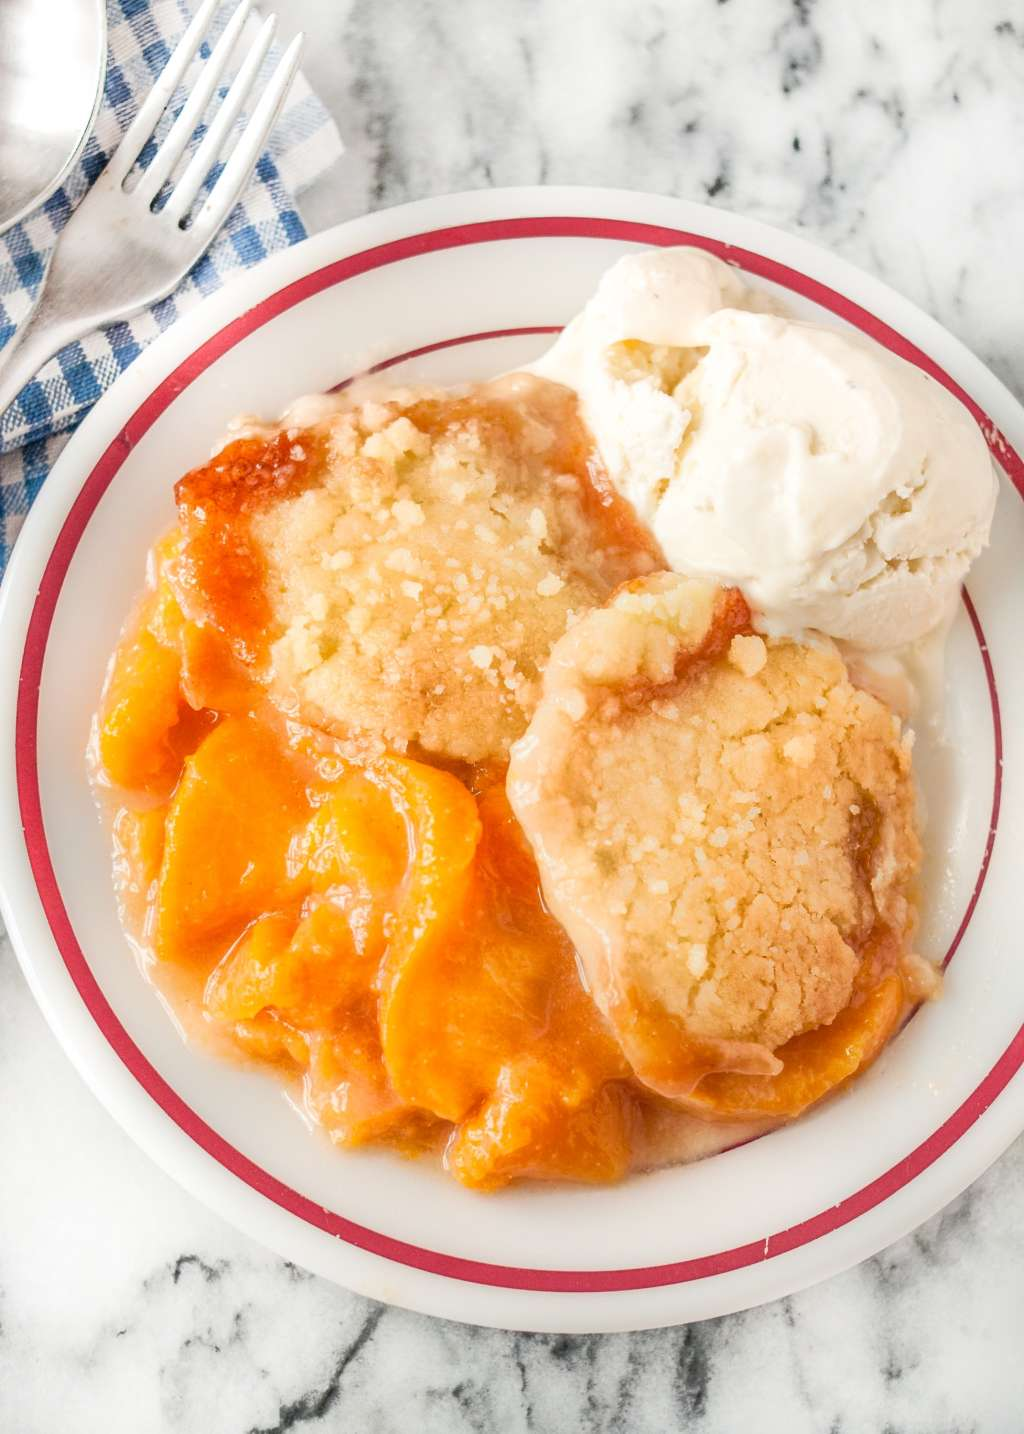 A Southern-Style Peach Cobbler With a 3-Ingredient Topping